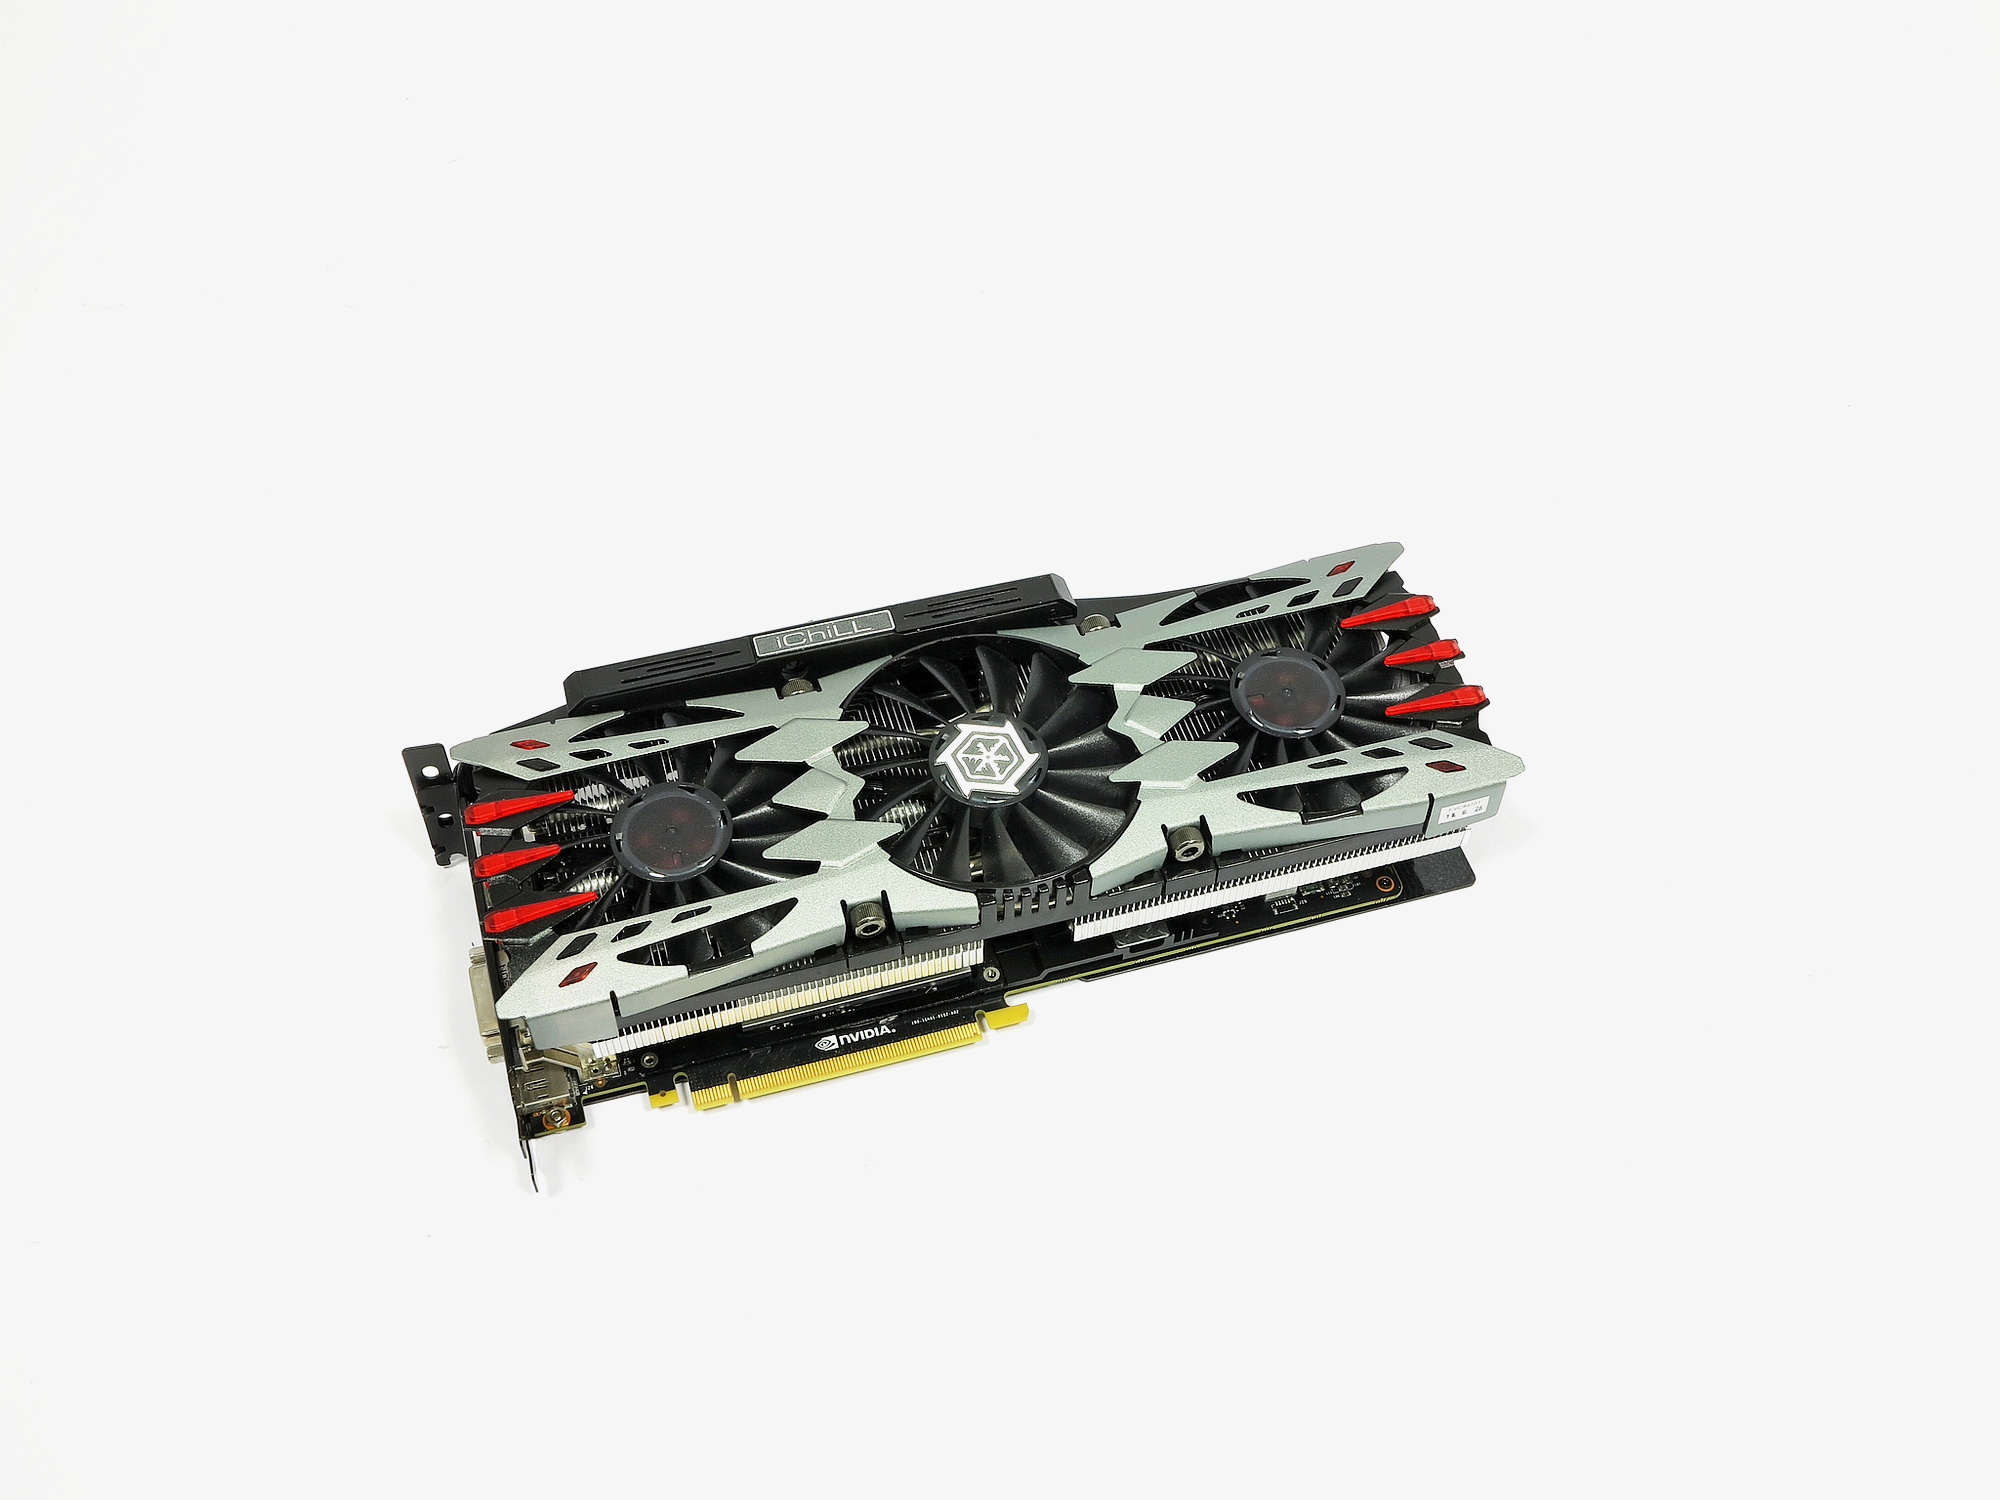 Inno 3D GTX 970 X4 Air Boss Ultra PCGH 01-2015-pcgh